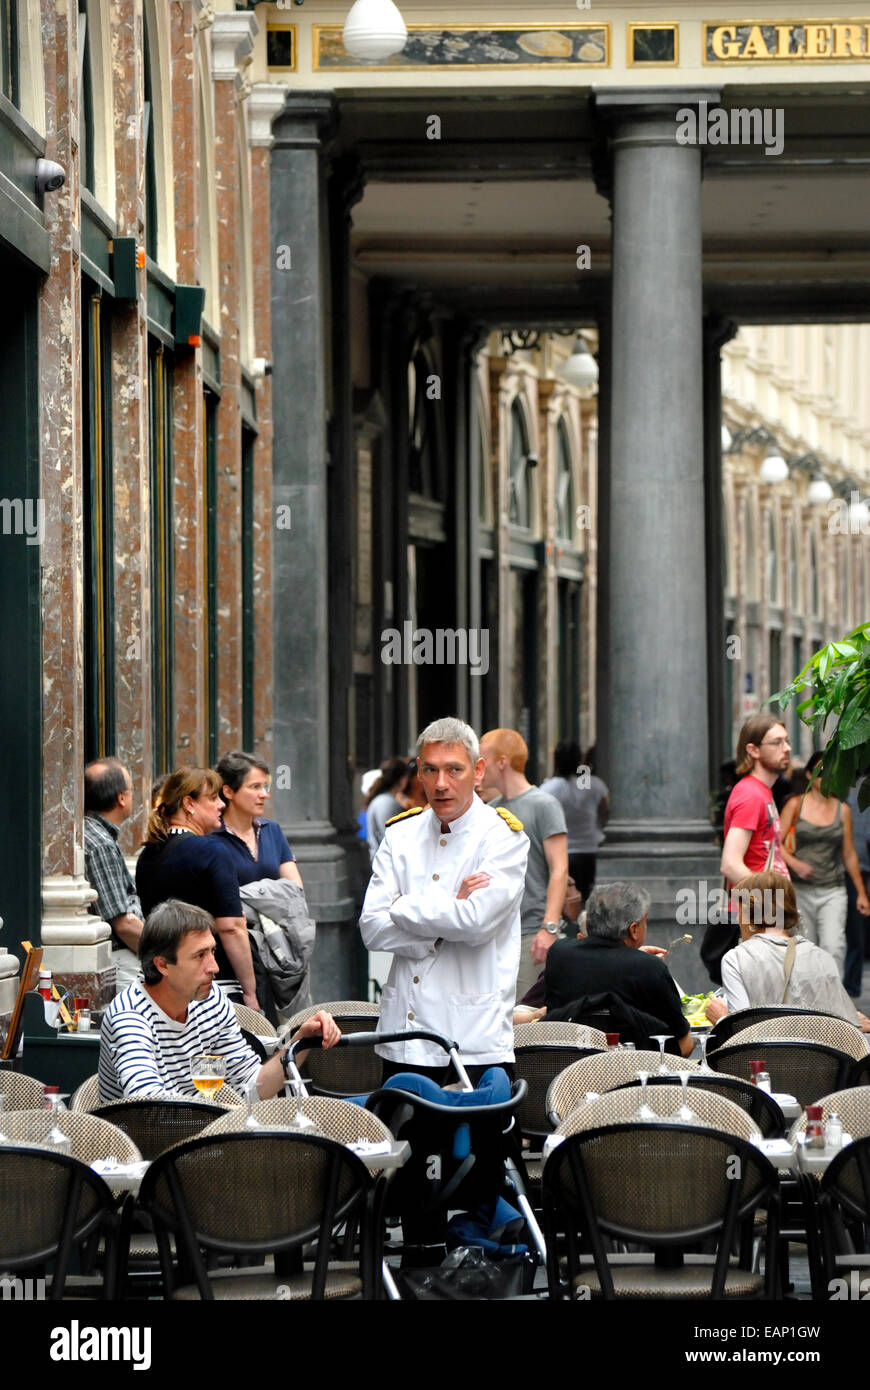 Brussels, Belgium. Waiter at a cafe in the Galeries Hubert. - Stock Image